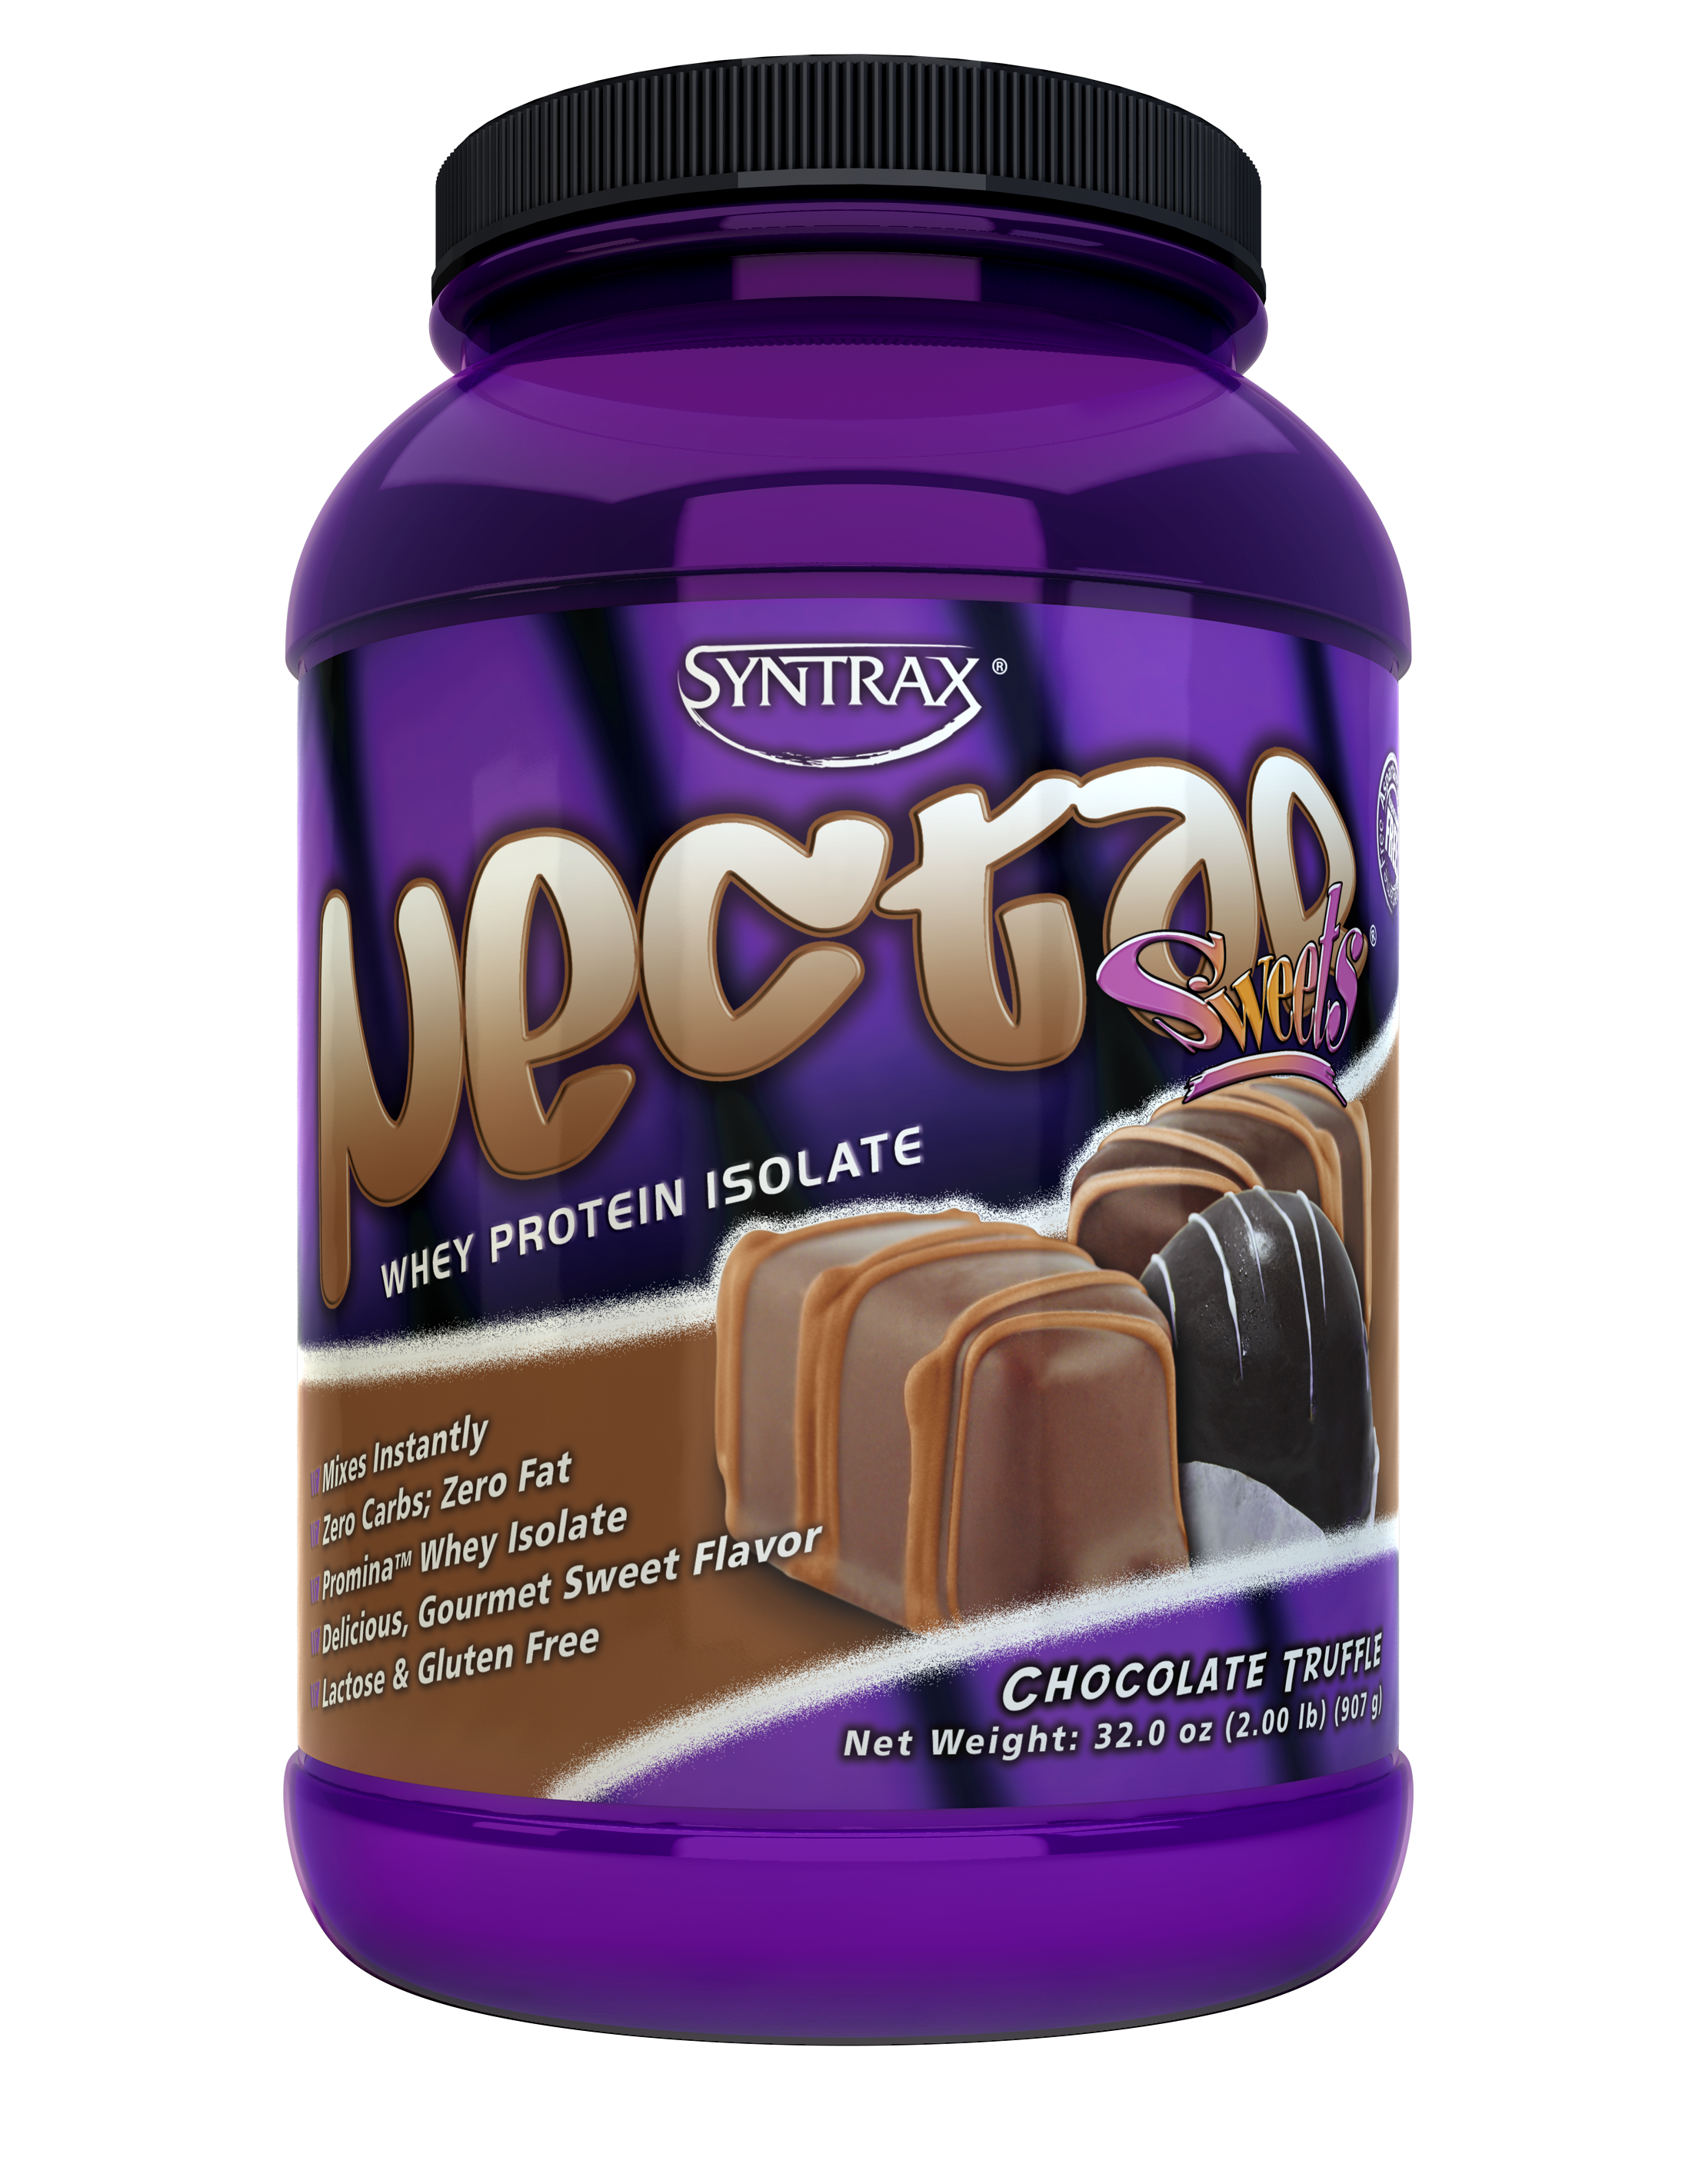 Syntrax Nectar Sweets - Chocolate Truffle 2 lb